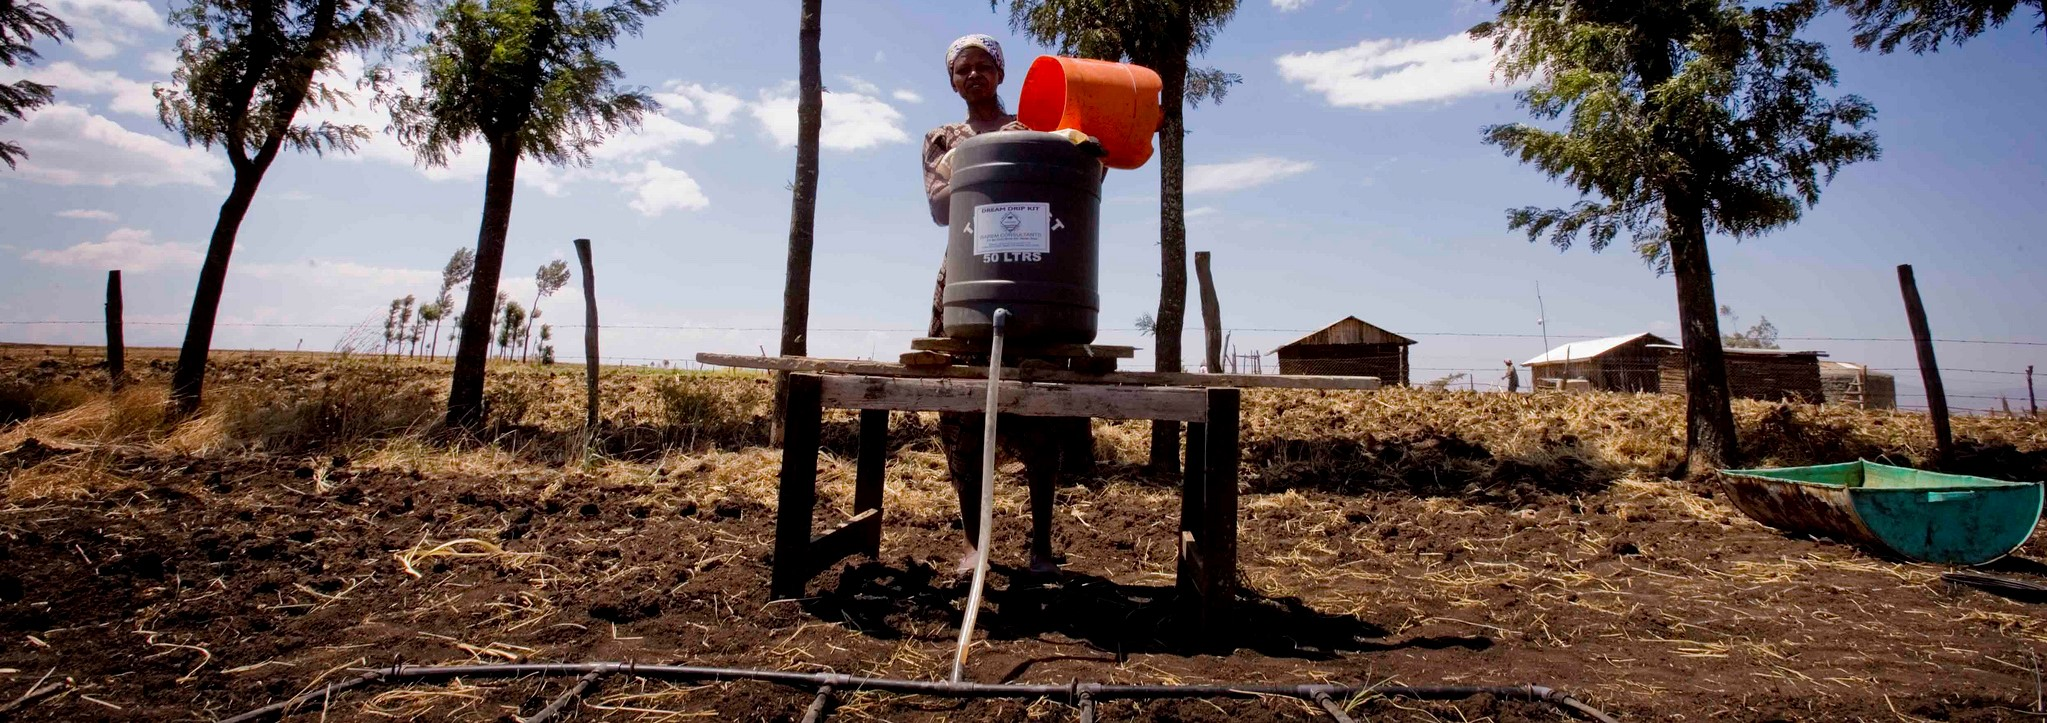 The AusAid Self Help Development Initiative helped Kenyans like Beth Wanjero irrigate using a drip watering kit. (Photo: Flickr/DFAT/2009)